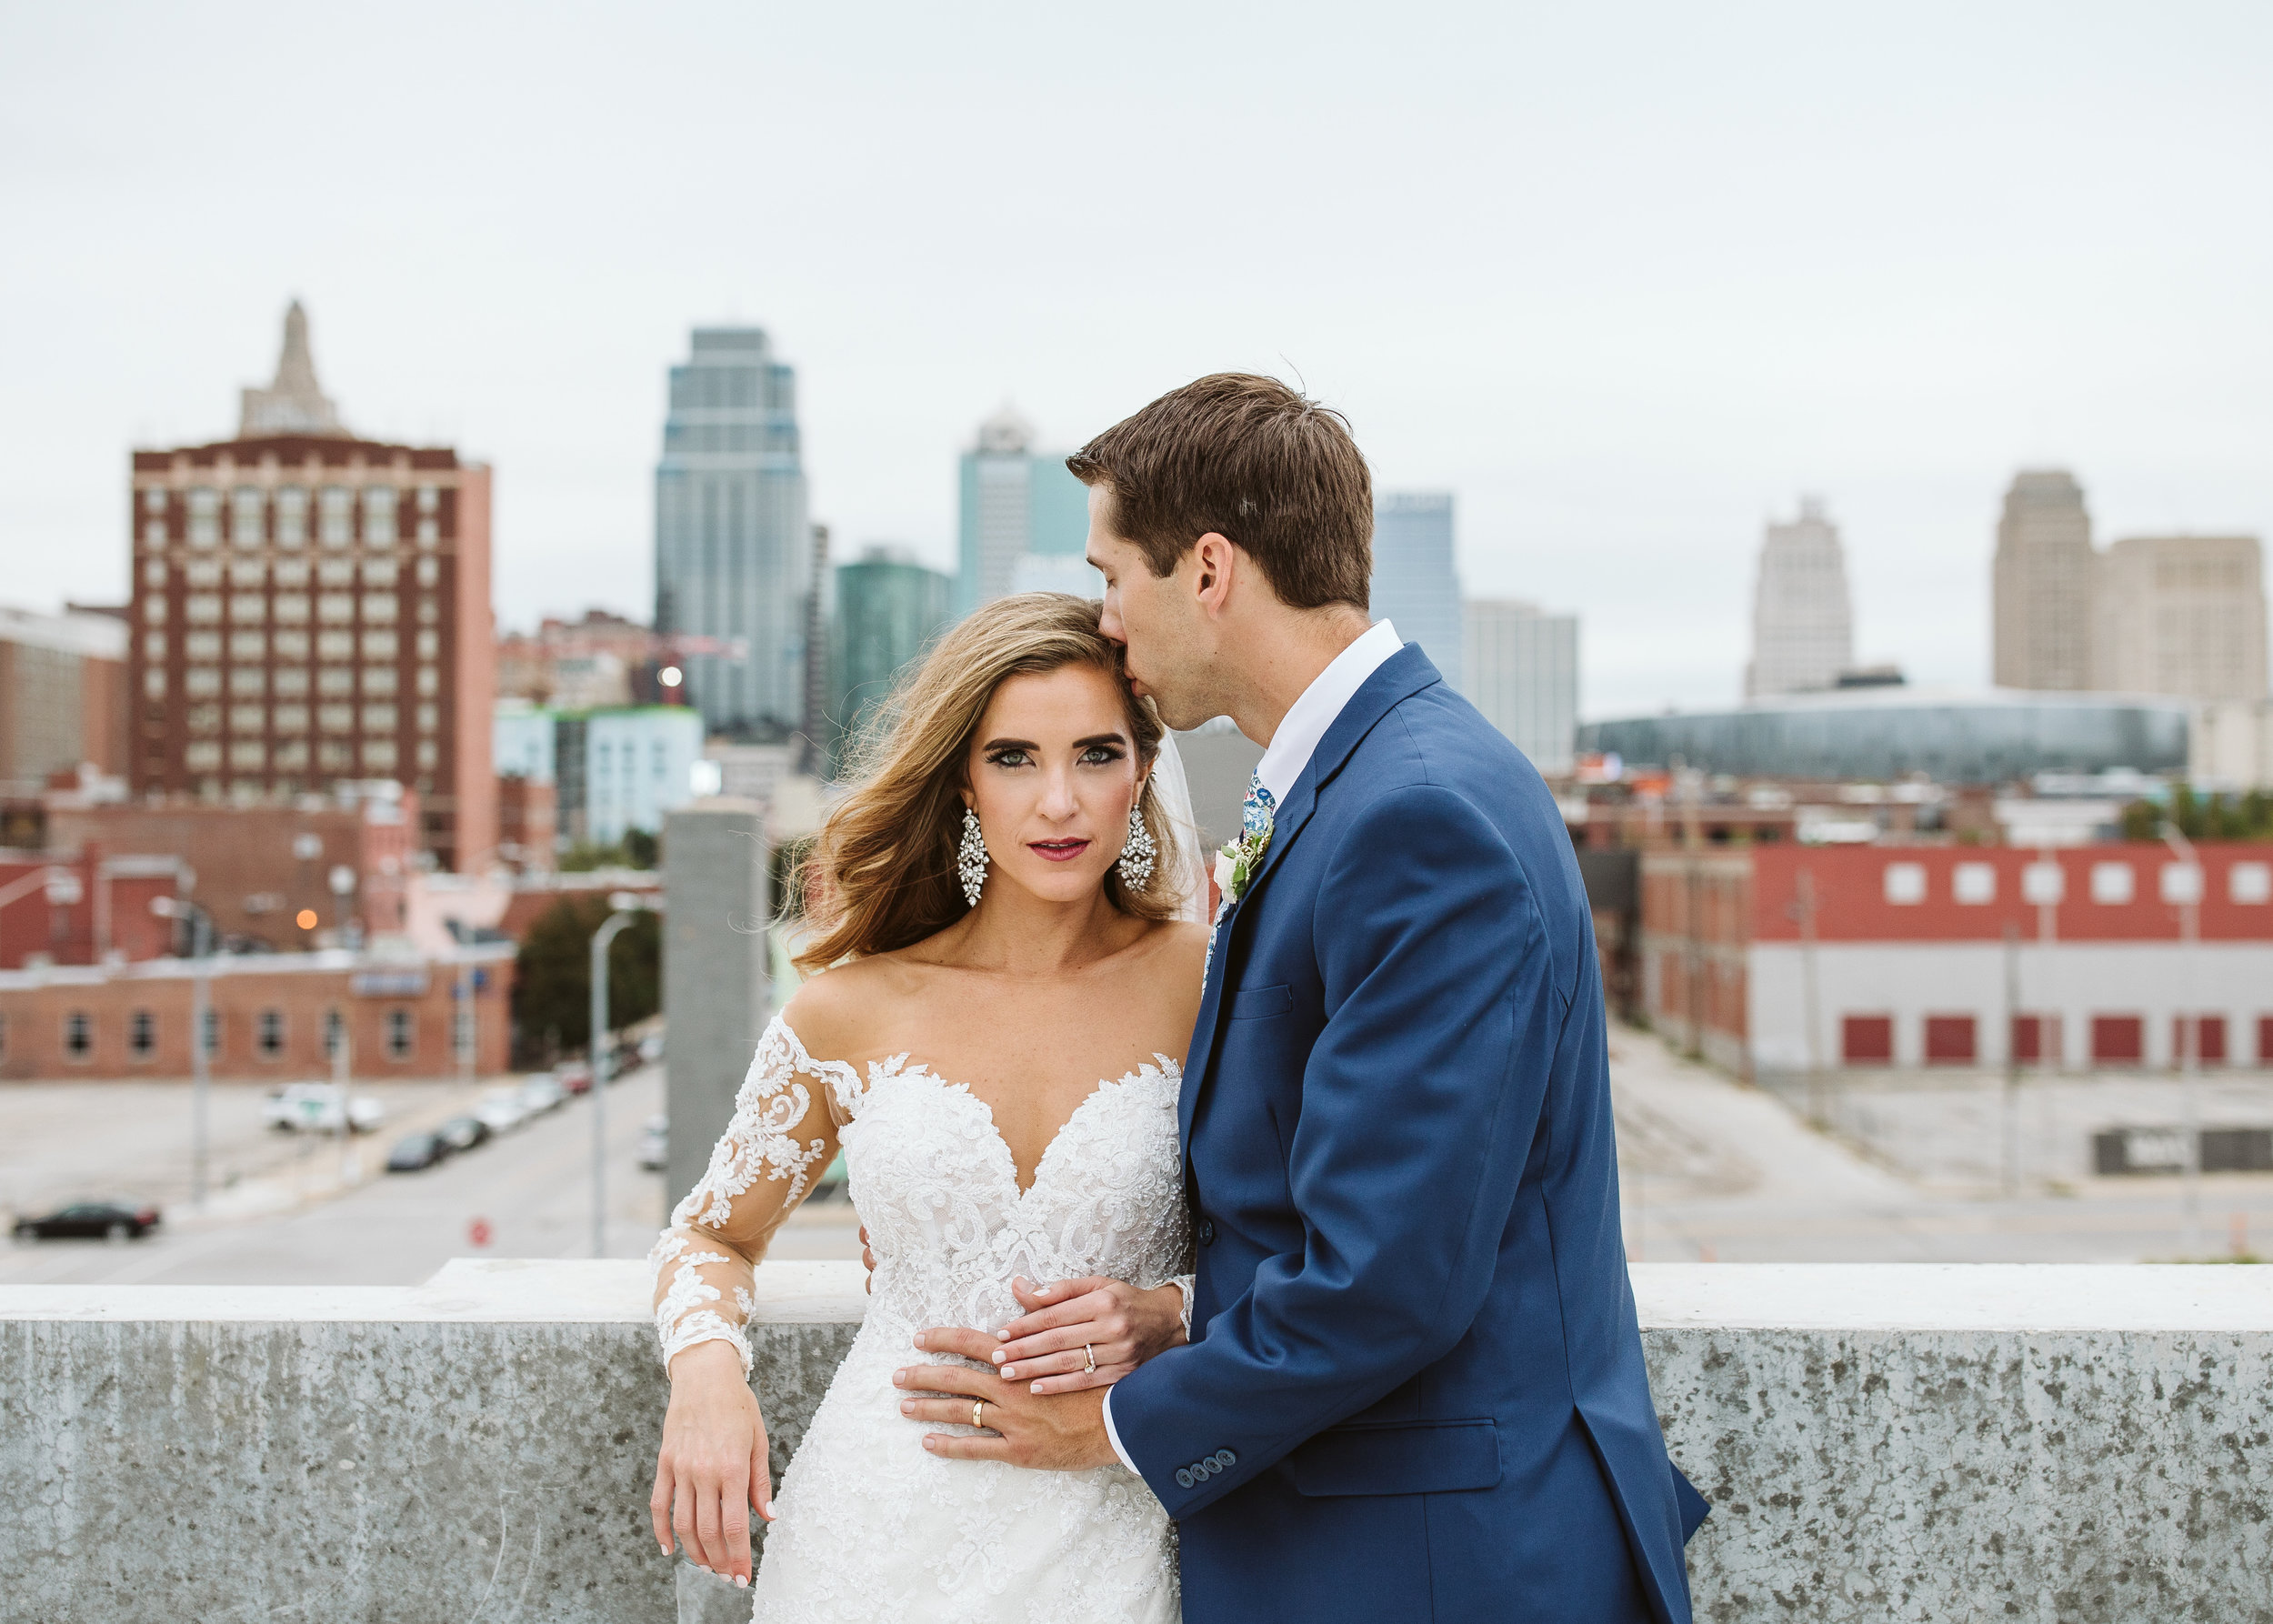 KAITLIN & COOPER - The Picture-Perfect KC Wedding // Our Lady of Sorrows & Feasts of Fancy at The Hobbs